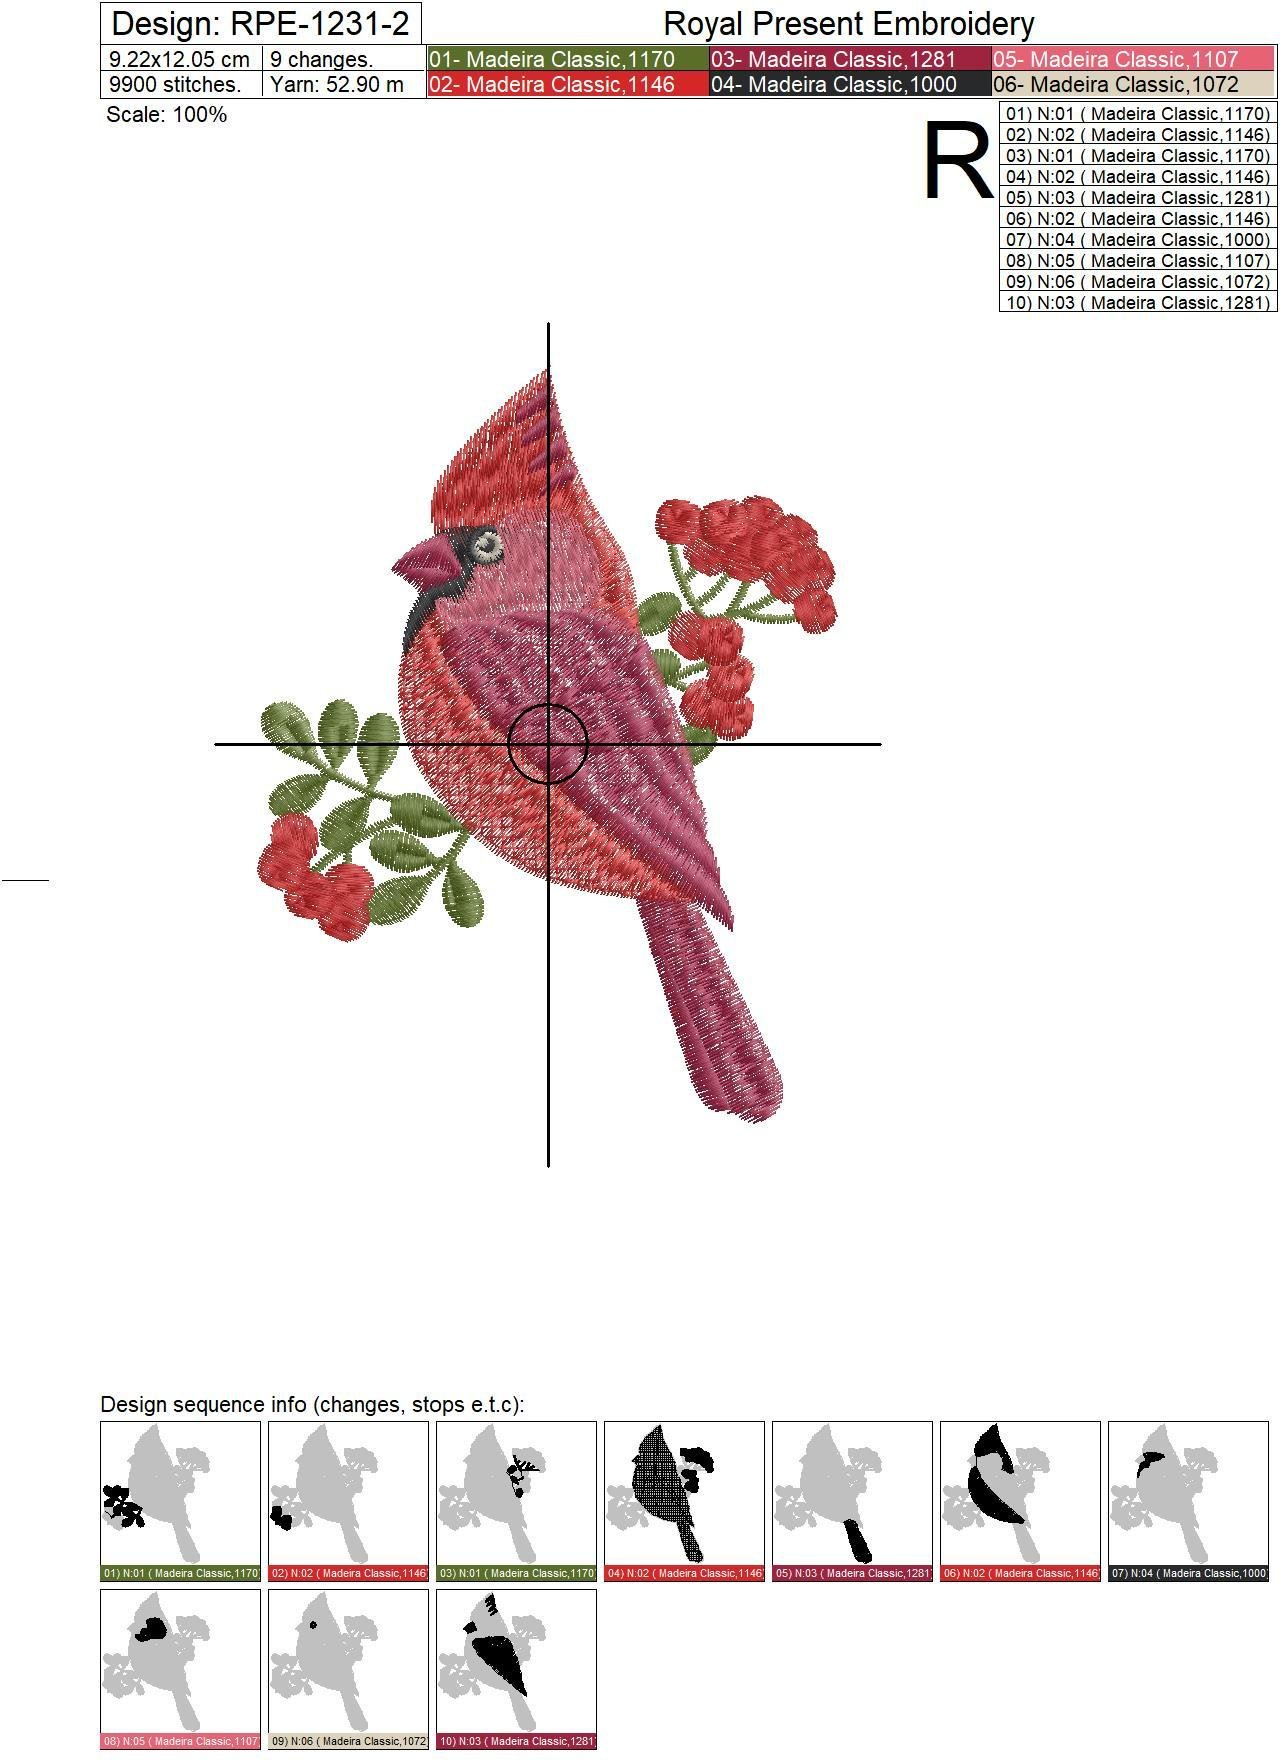 Machine Embroidery Design Red Cardinal - 2 sizes